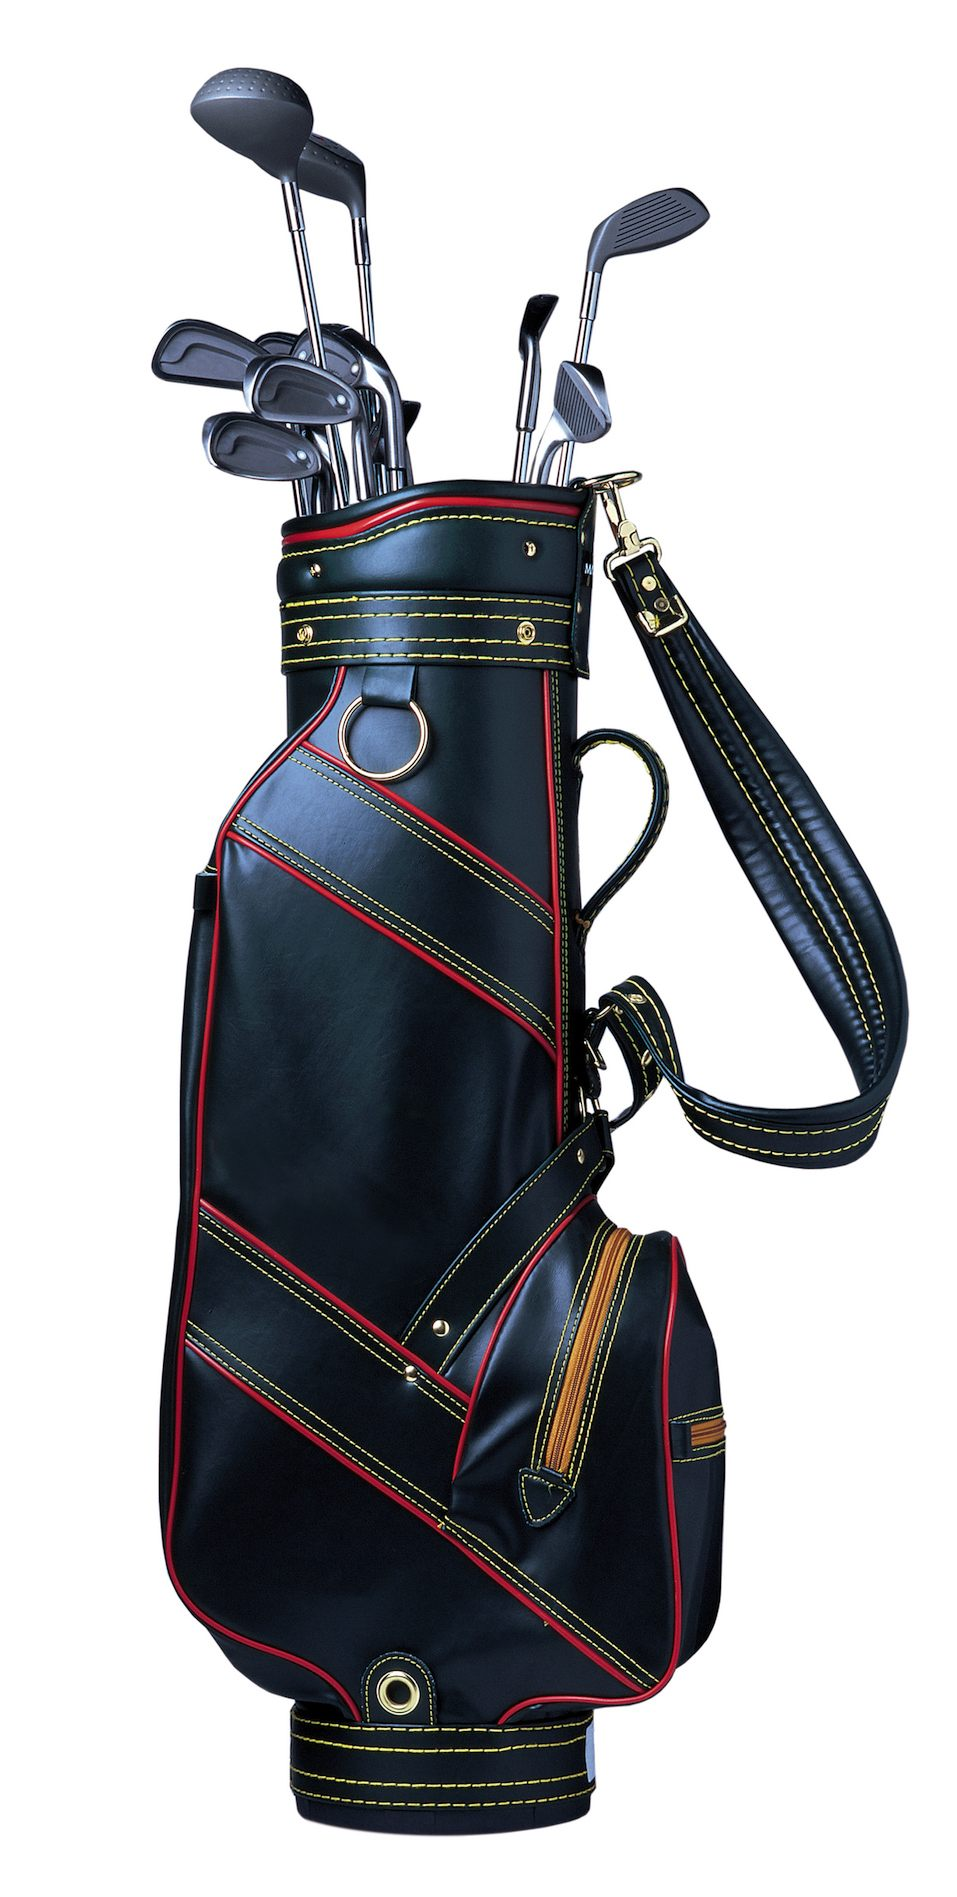 Golf clubs in a leather golf bag